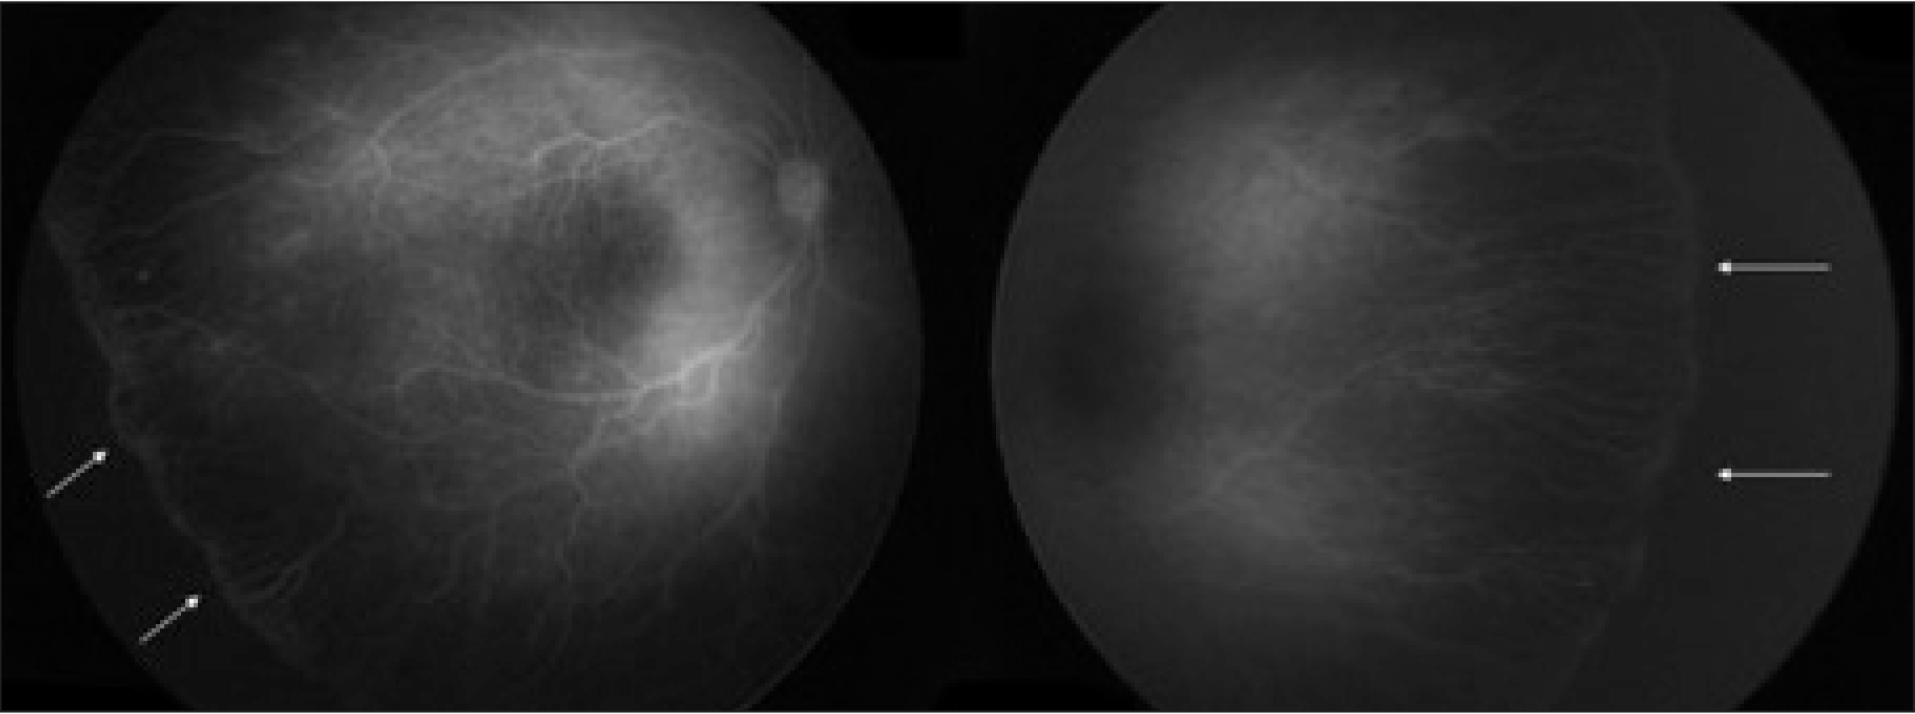 Postconceptual age of 46 weeks: stage 2 retinopathy of prematurity with 12 clock hours of involvement in zone II in both eyes.